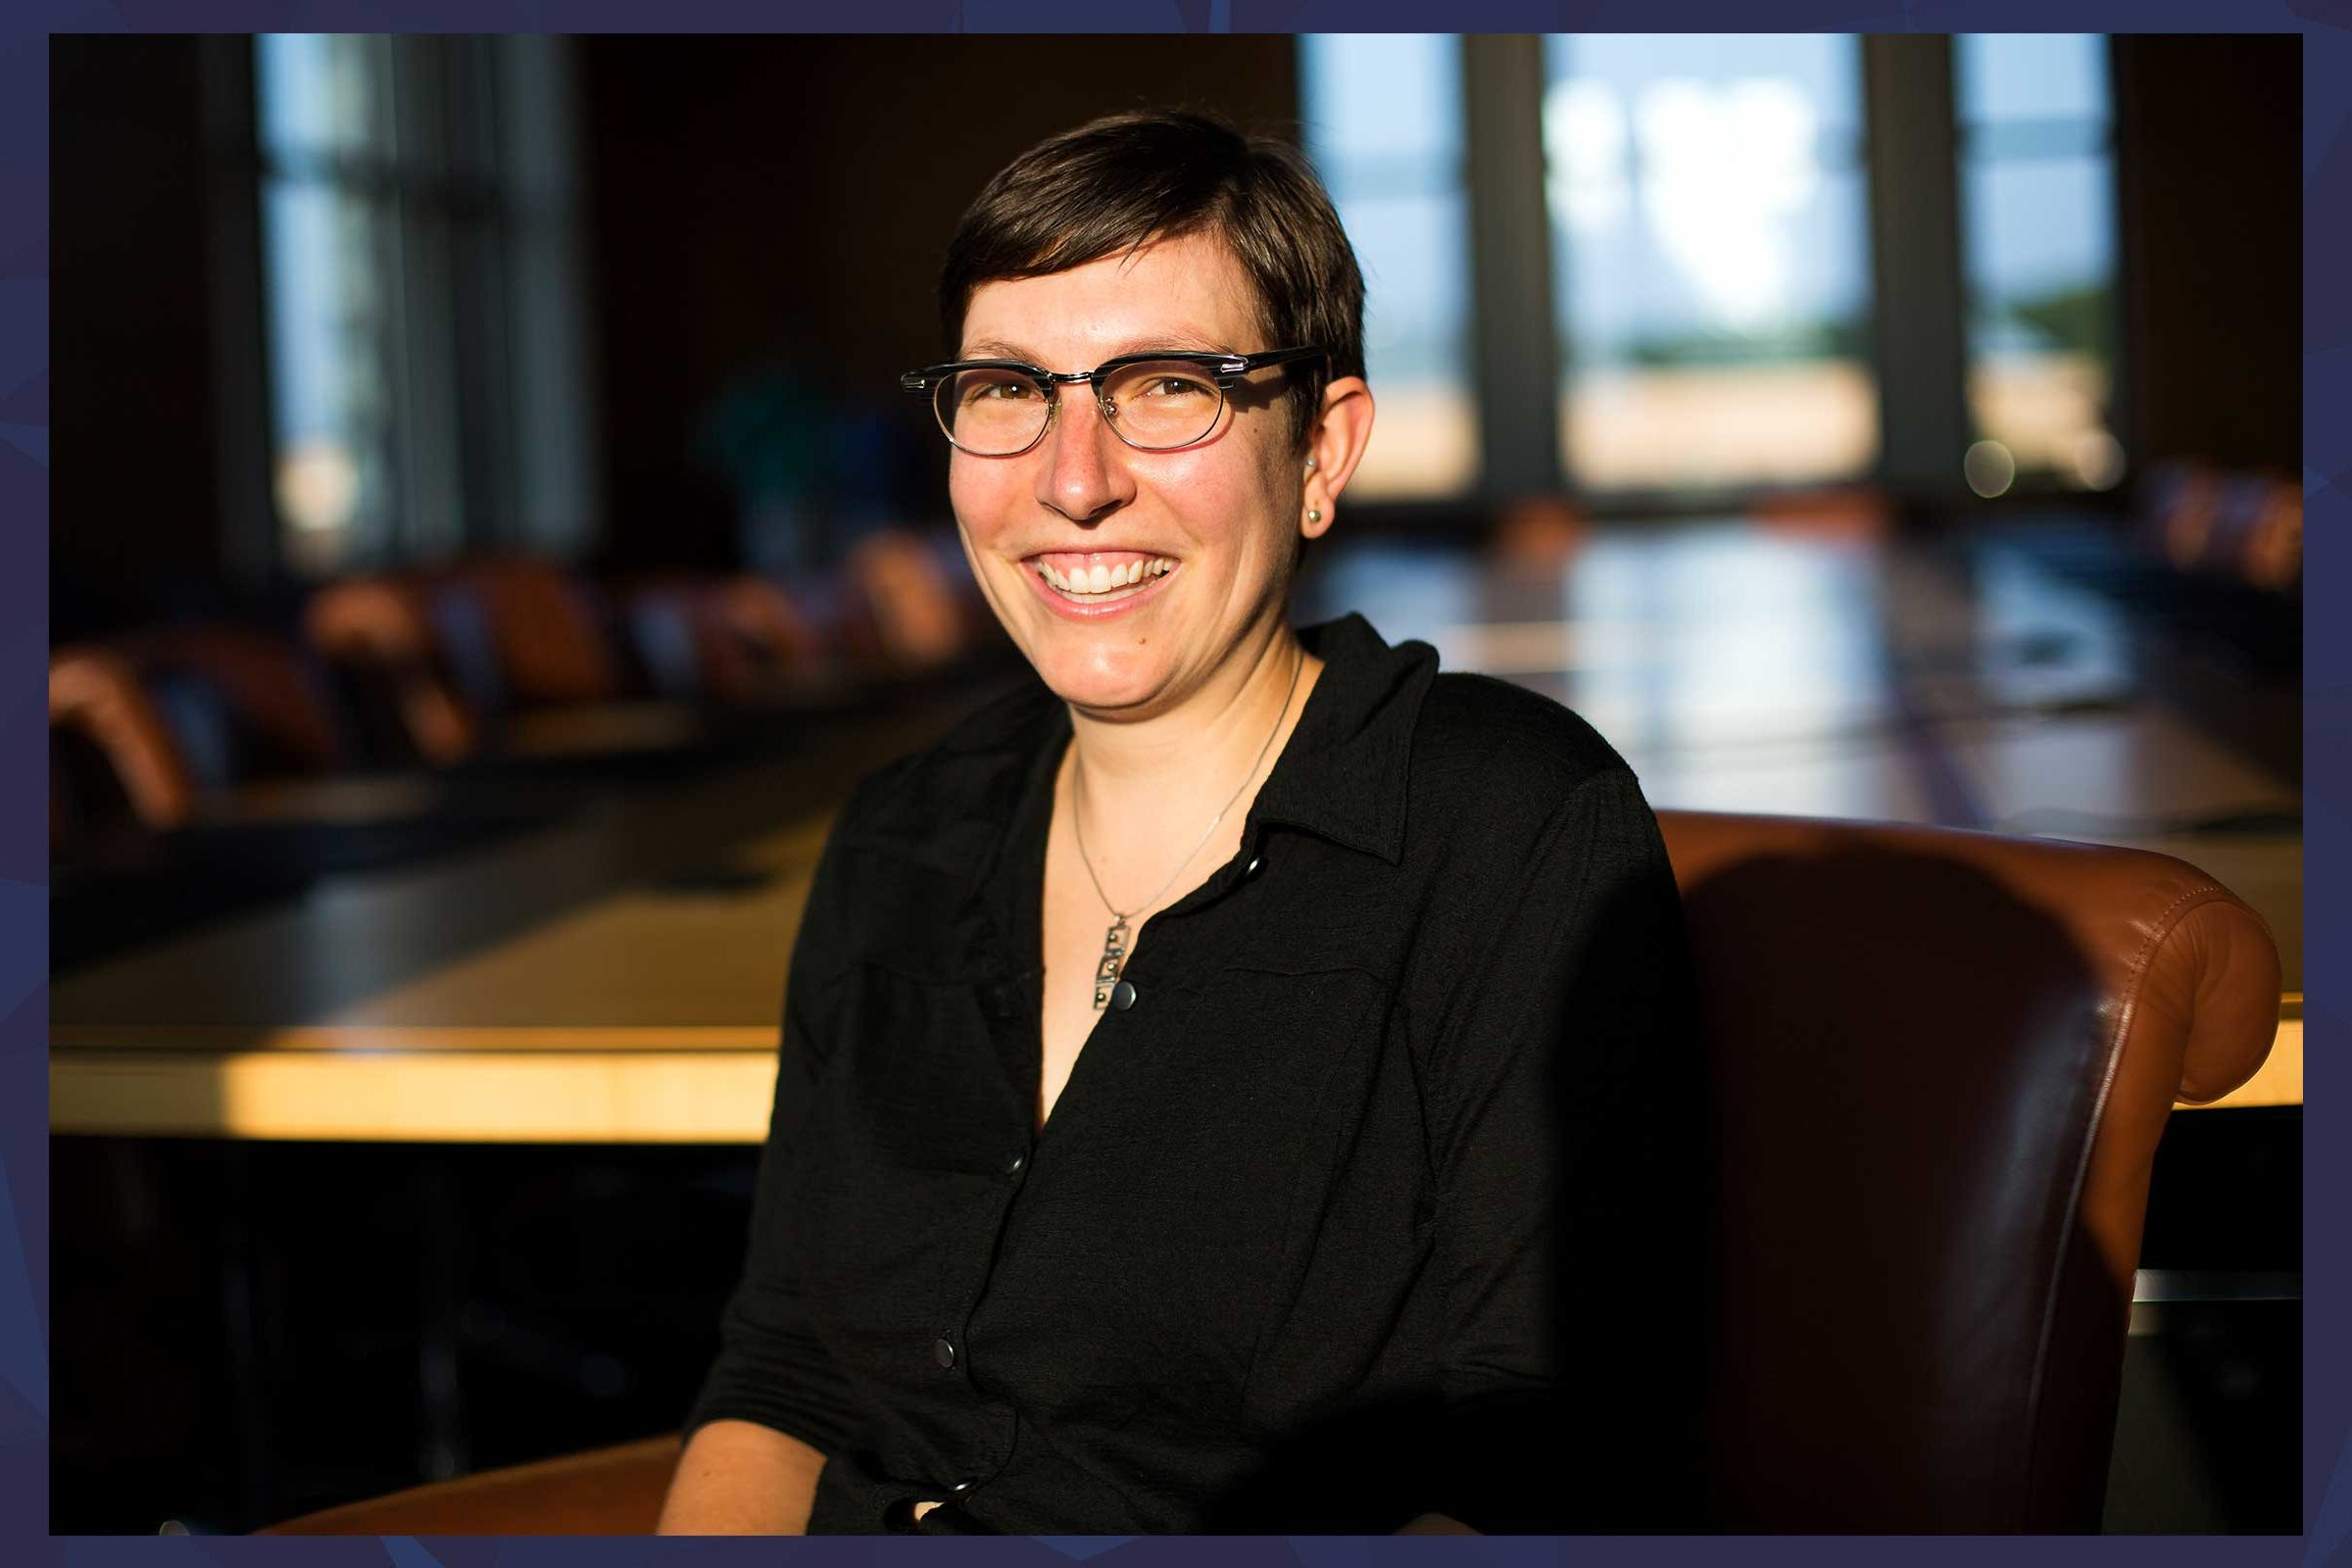 Asst. Prof. Keppel-Aleks to receive environmental award from American Geophysical Union (AGU)